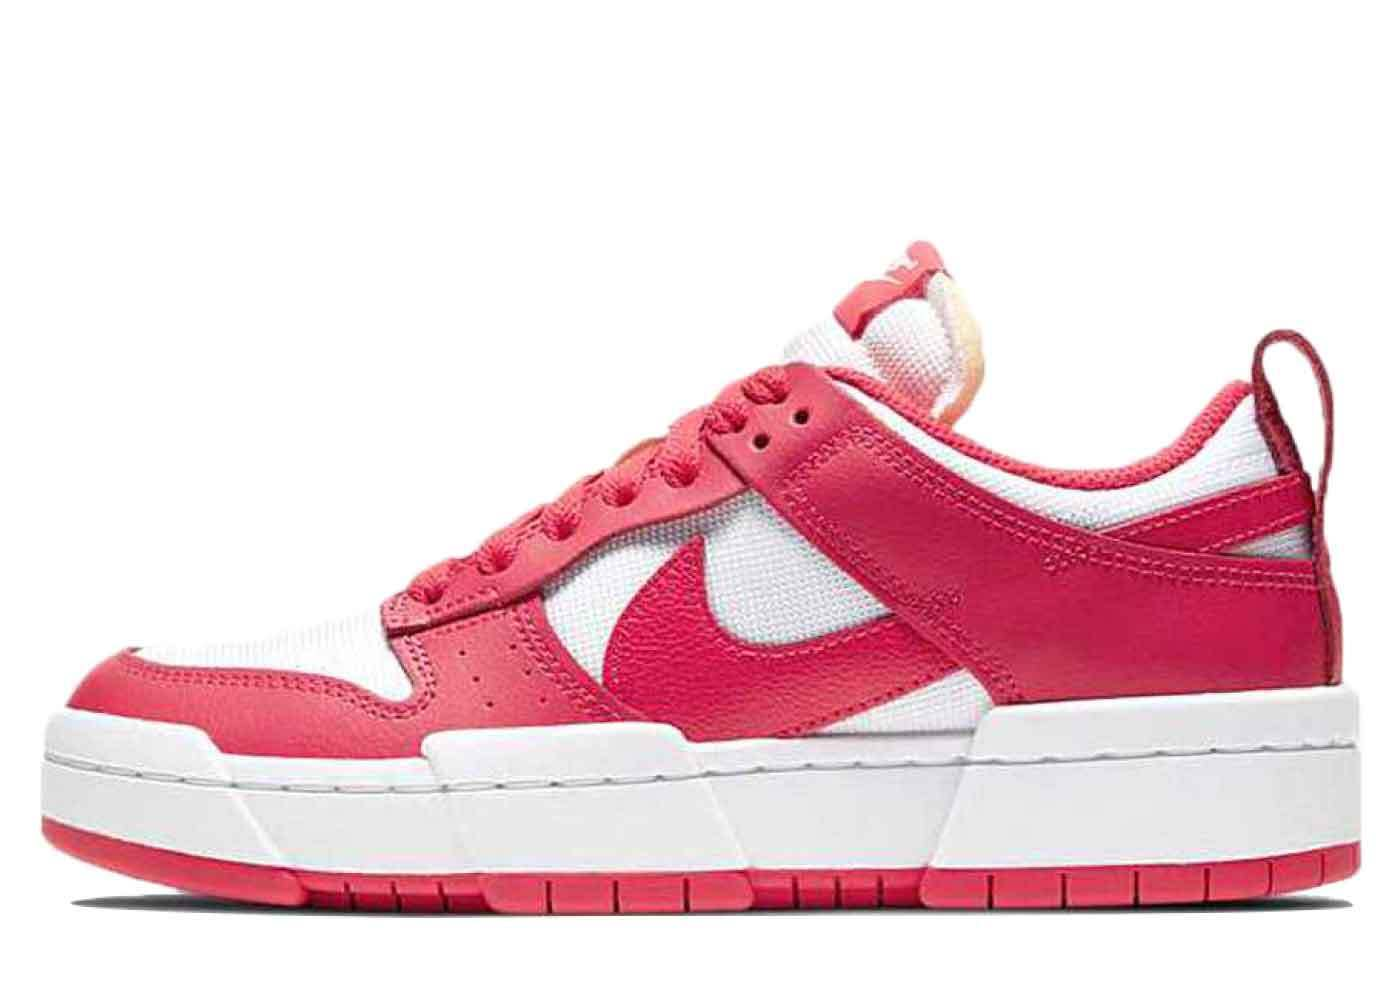 Nike Dunk Low Disrupt Siren Red Womensの写真